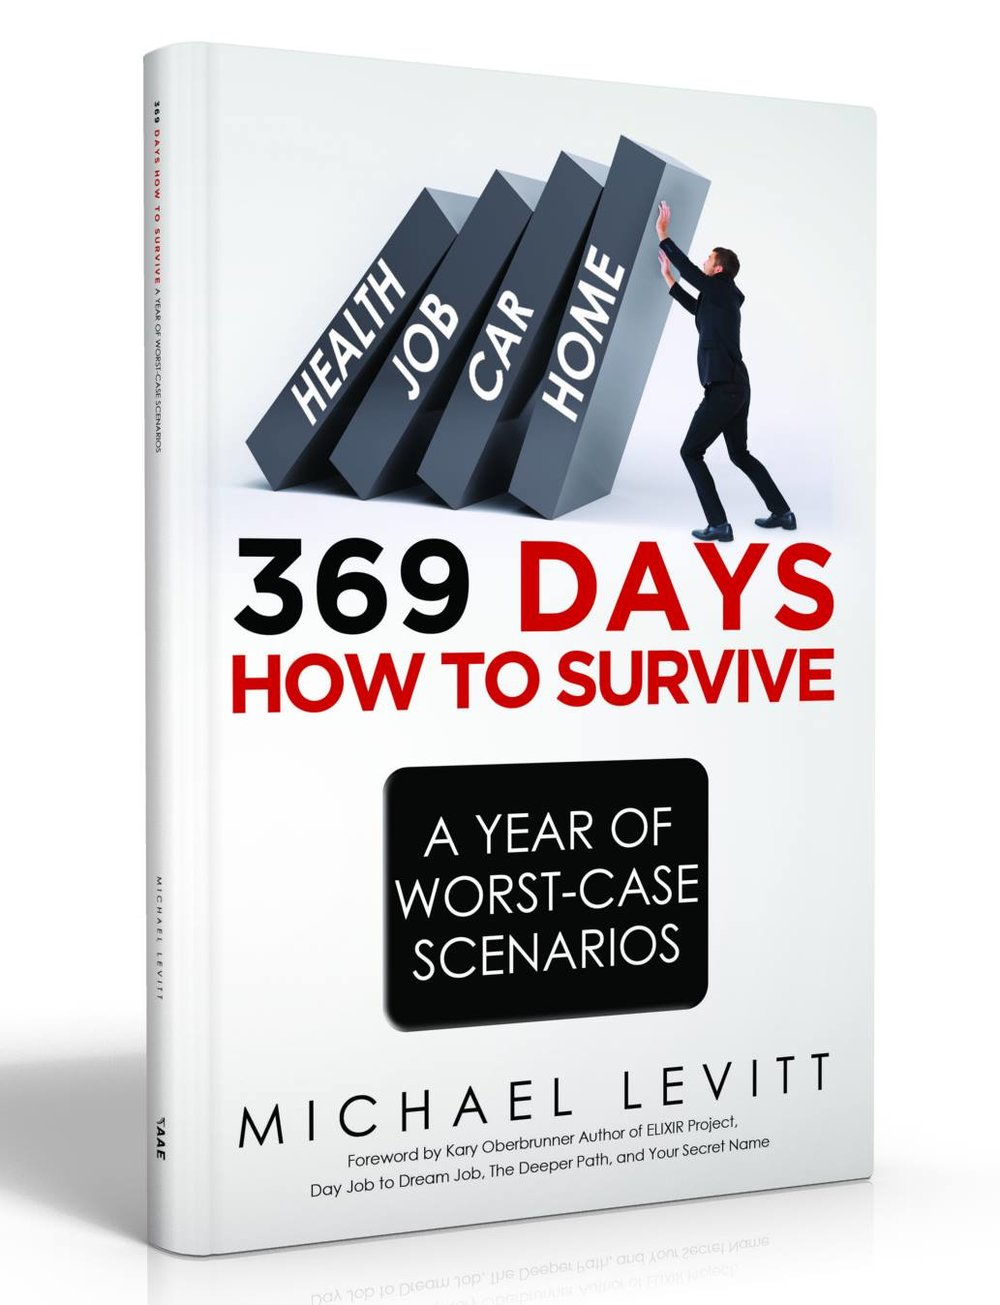 369 Days: How To Survive A Year of Worst-Case Scenarios